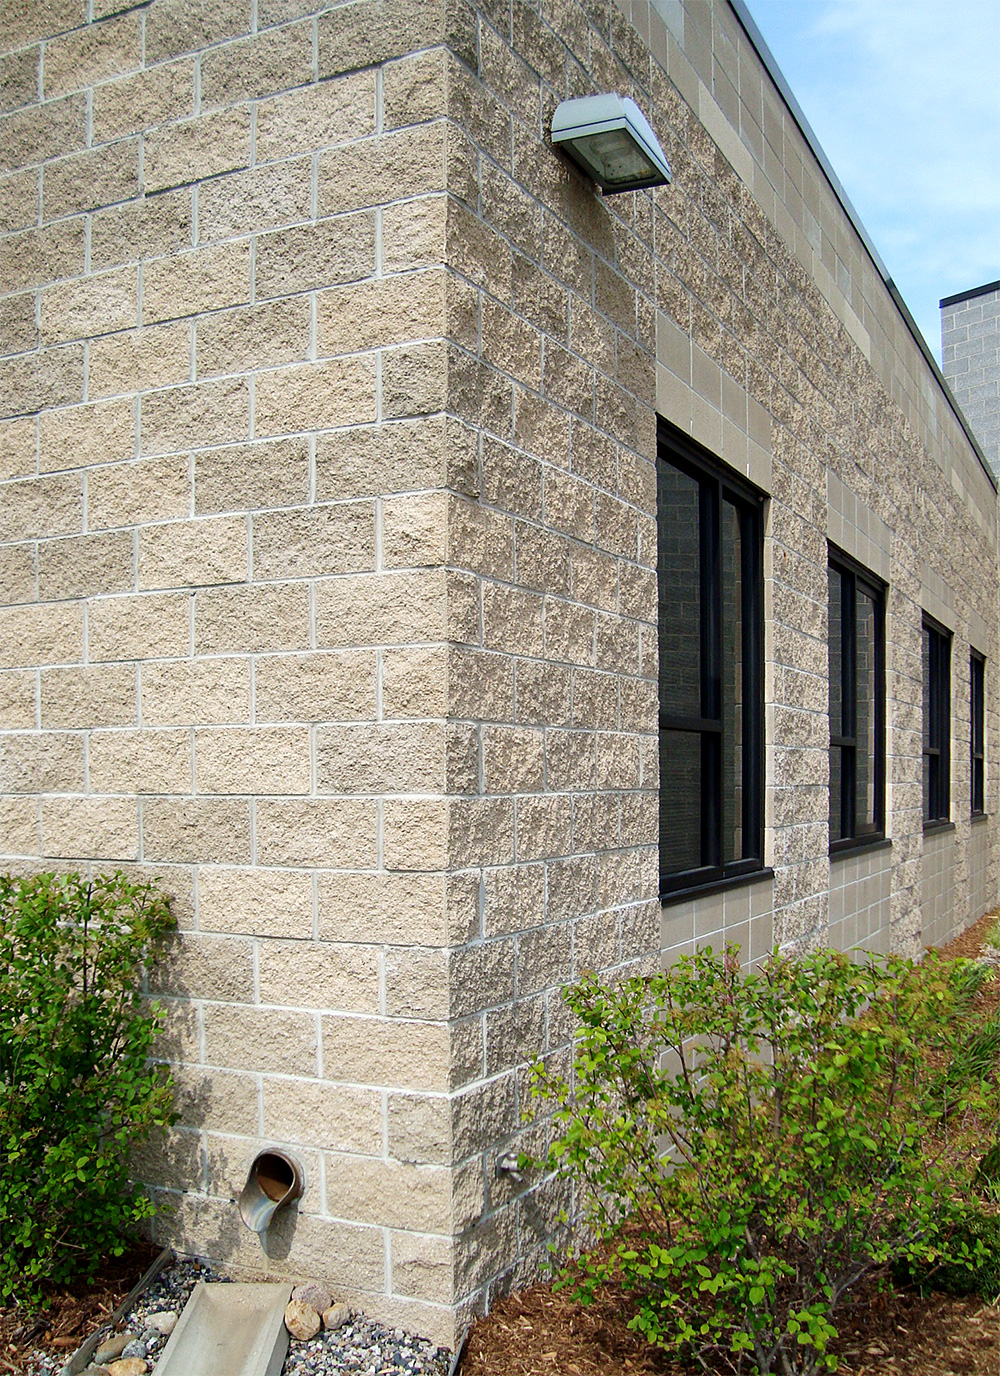 grand-rapids-michigan-certified-concrete-varisplit-19.jpg